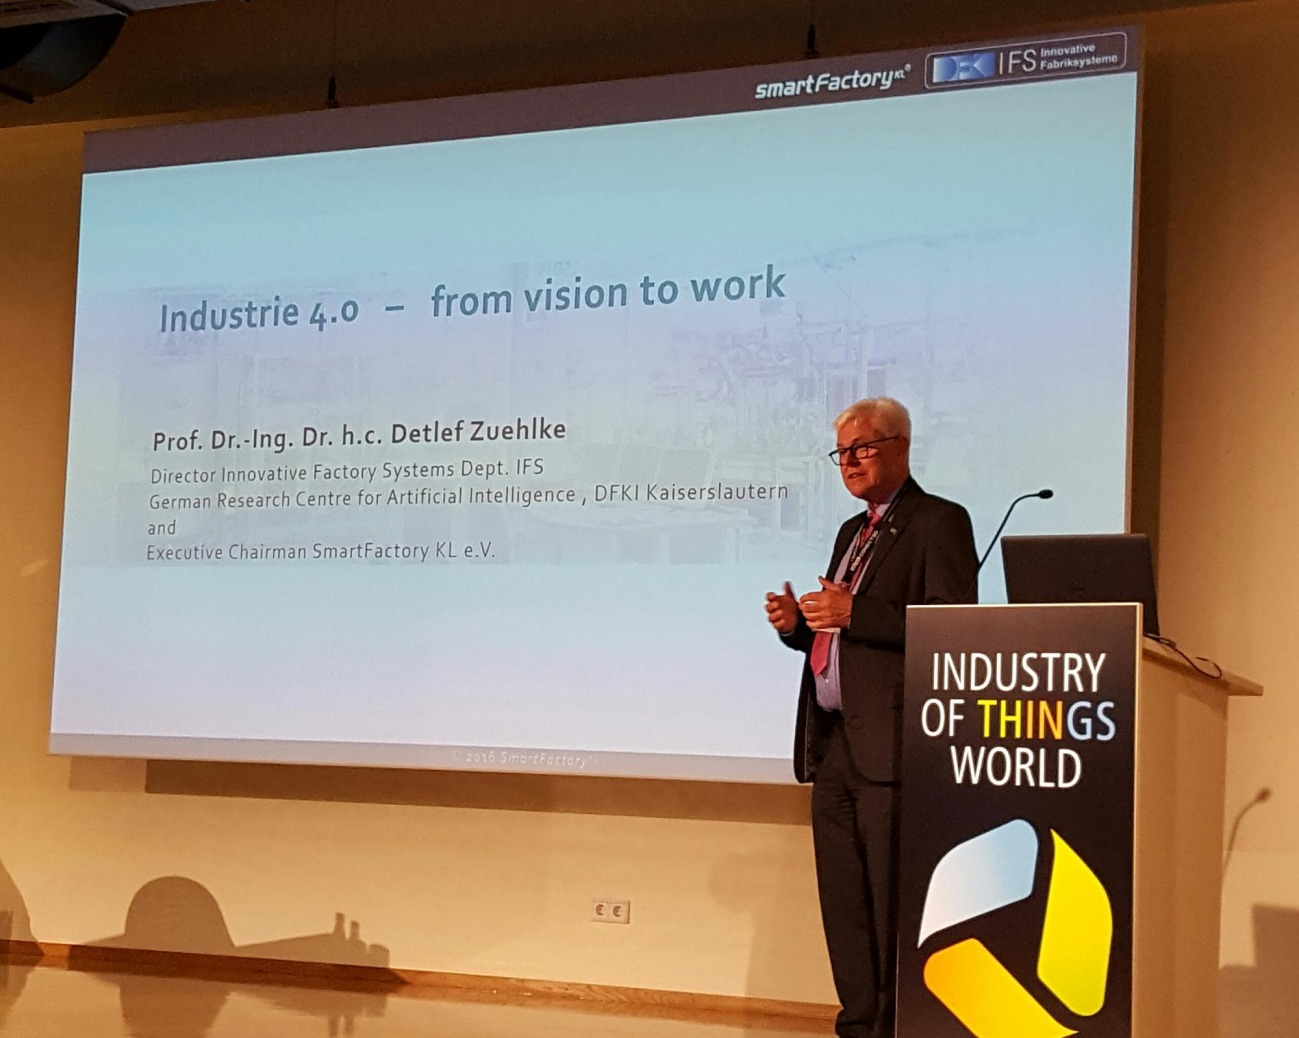 2. Industry of Things World Conference in Berlin